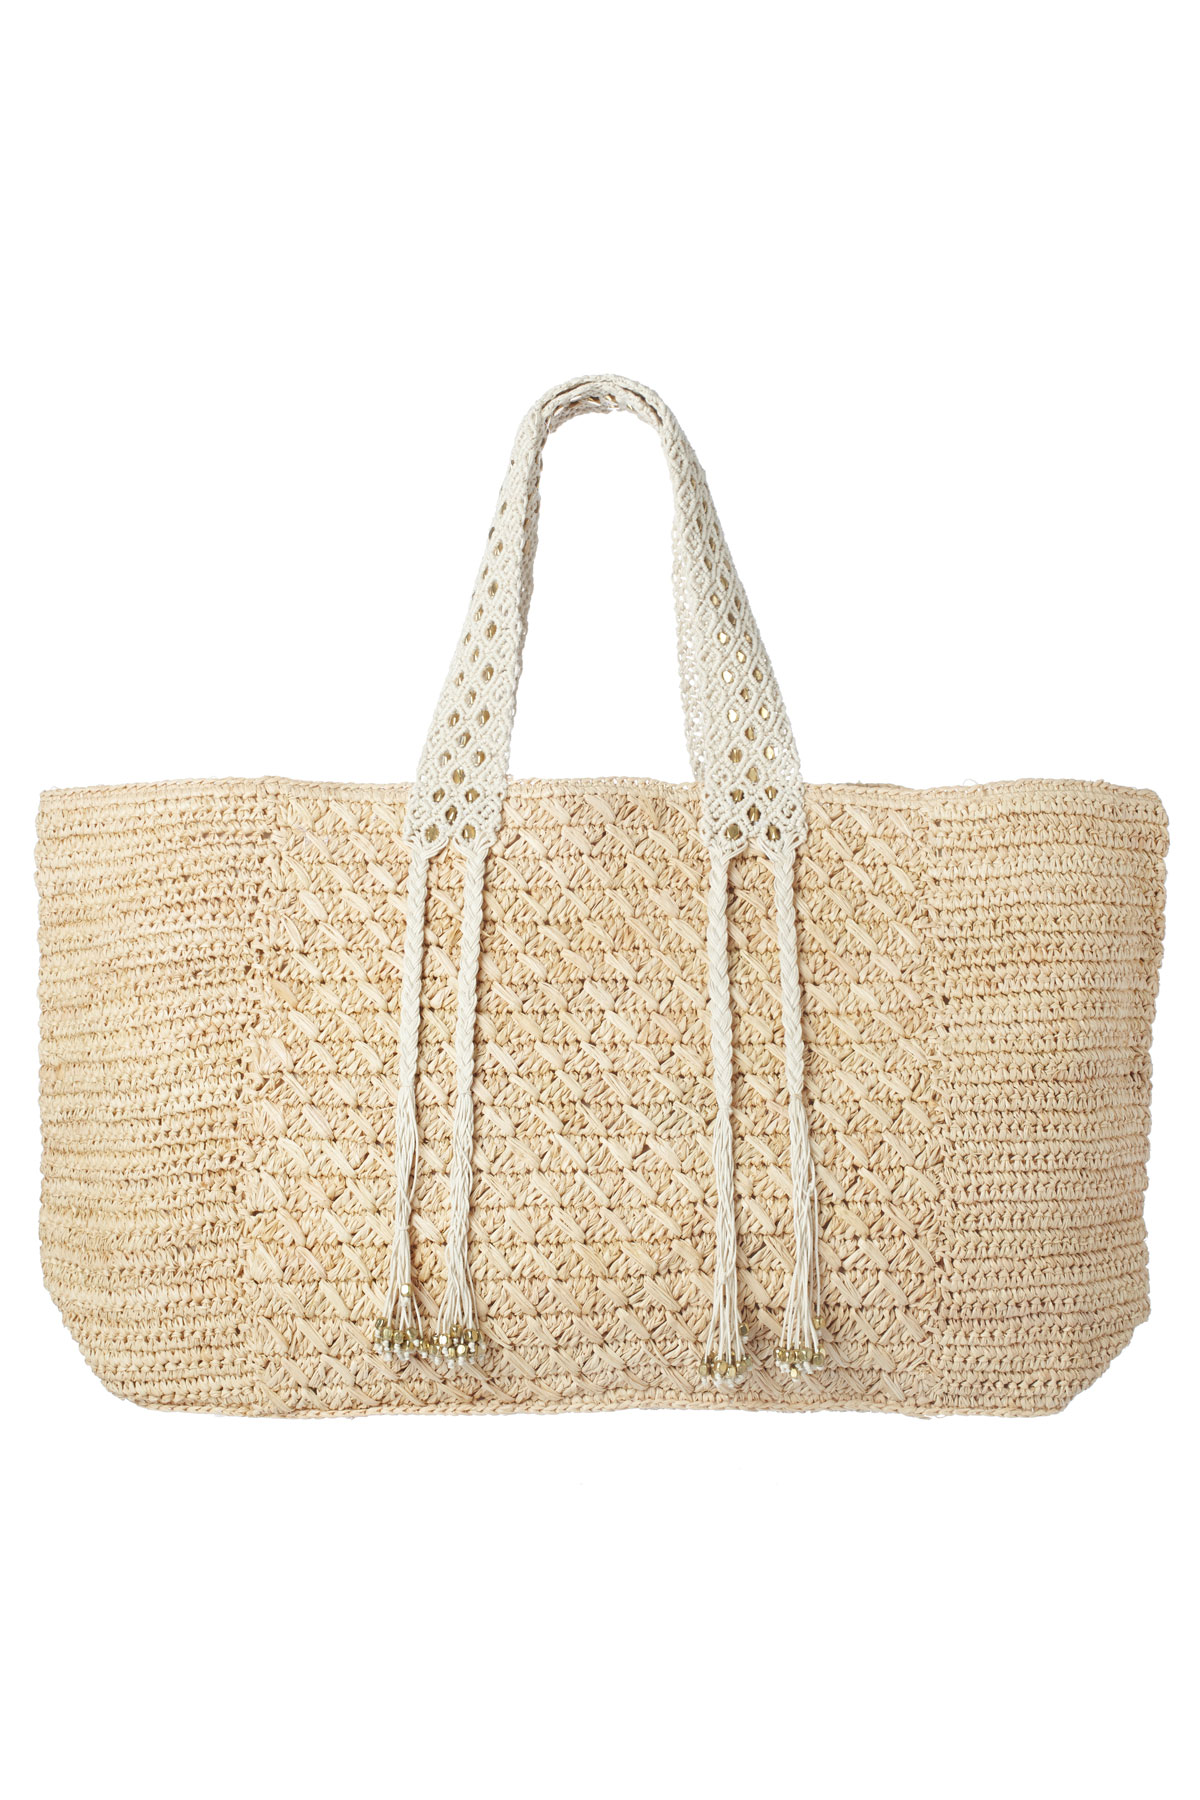 Handcrafted Raffia Tote - Natural